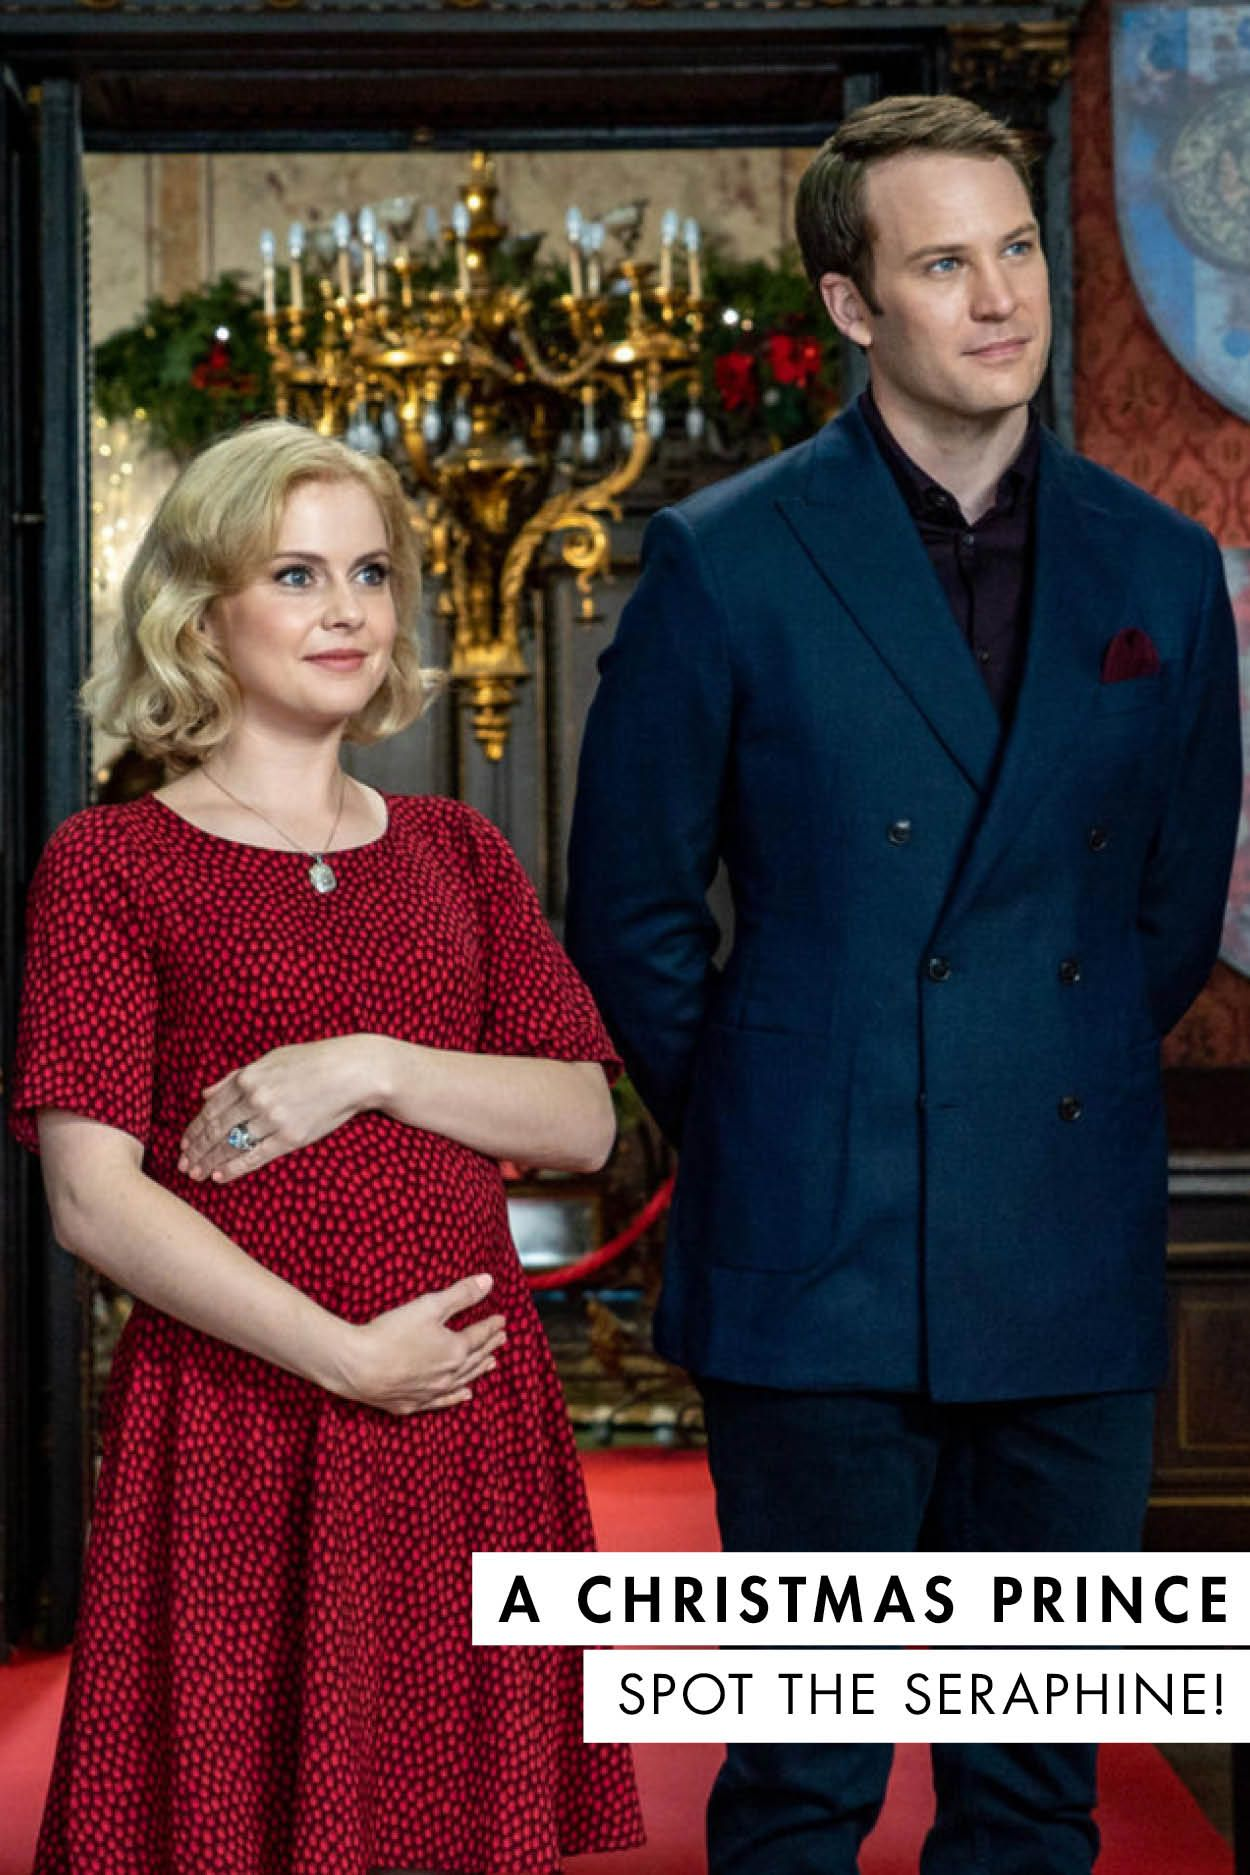 A Christmas Prince, The Royal Baby Spot the Seraphine